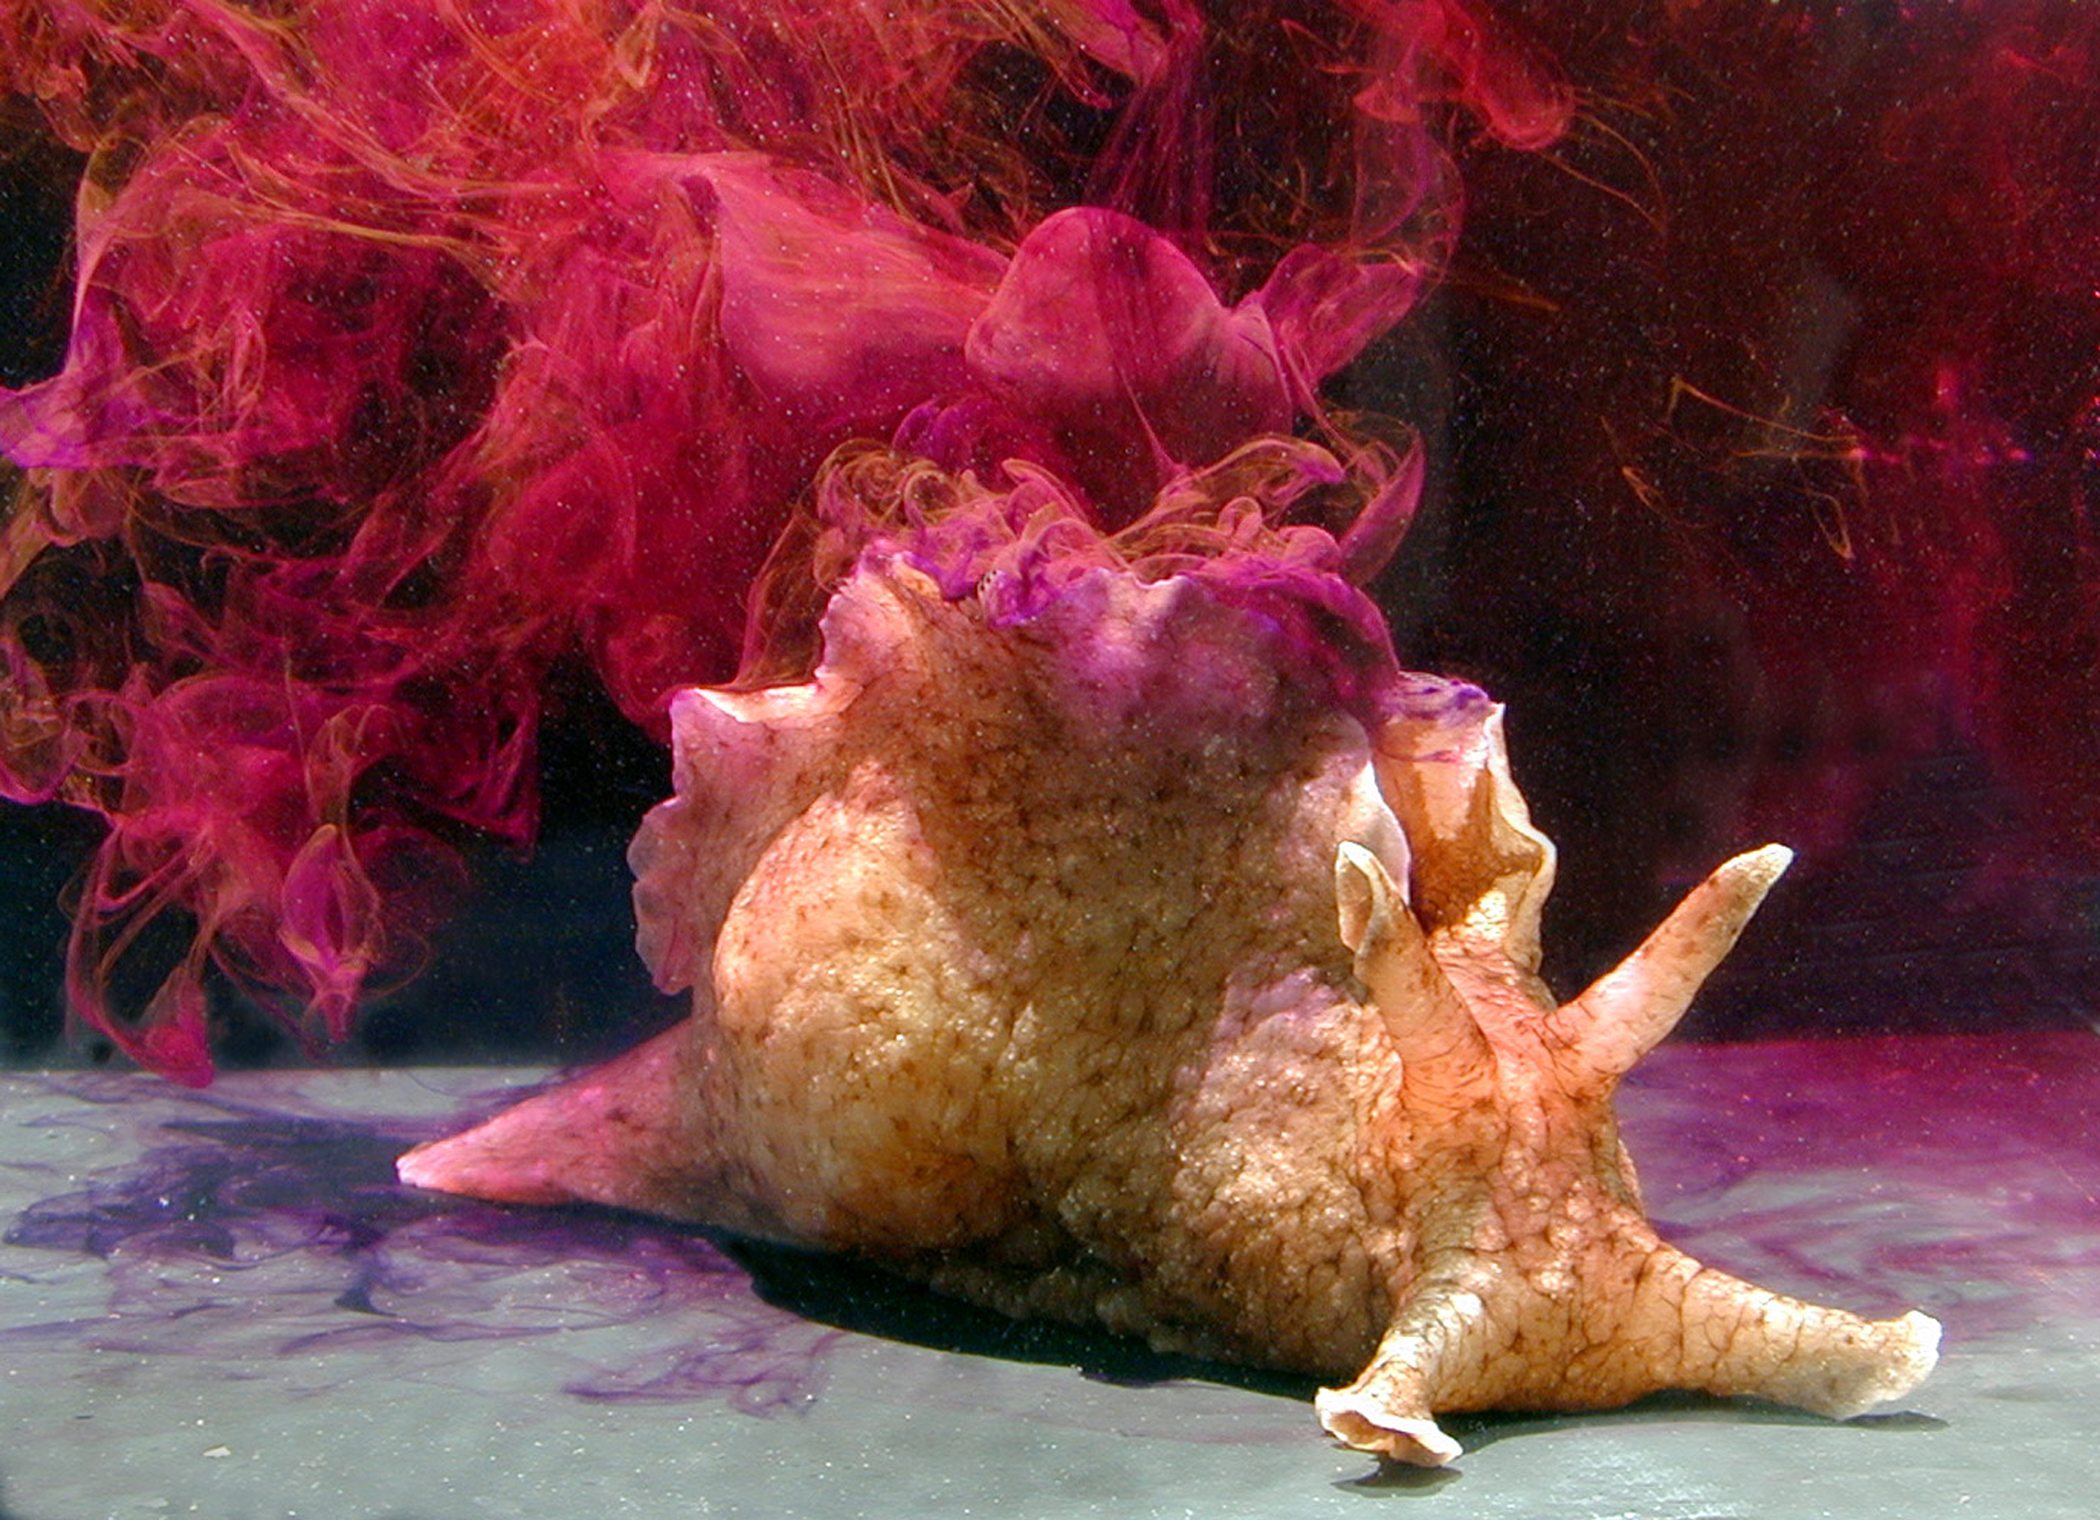 Say hello to the slimy end of cute: the Californian Sea Hare